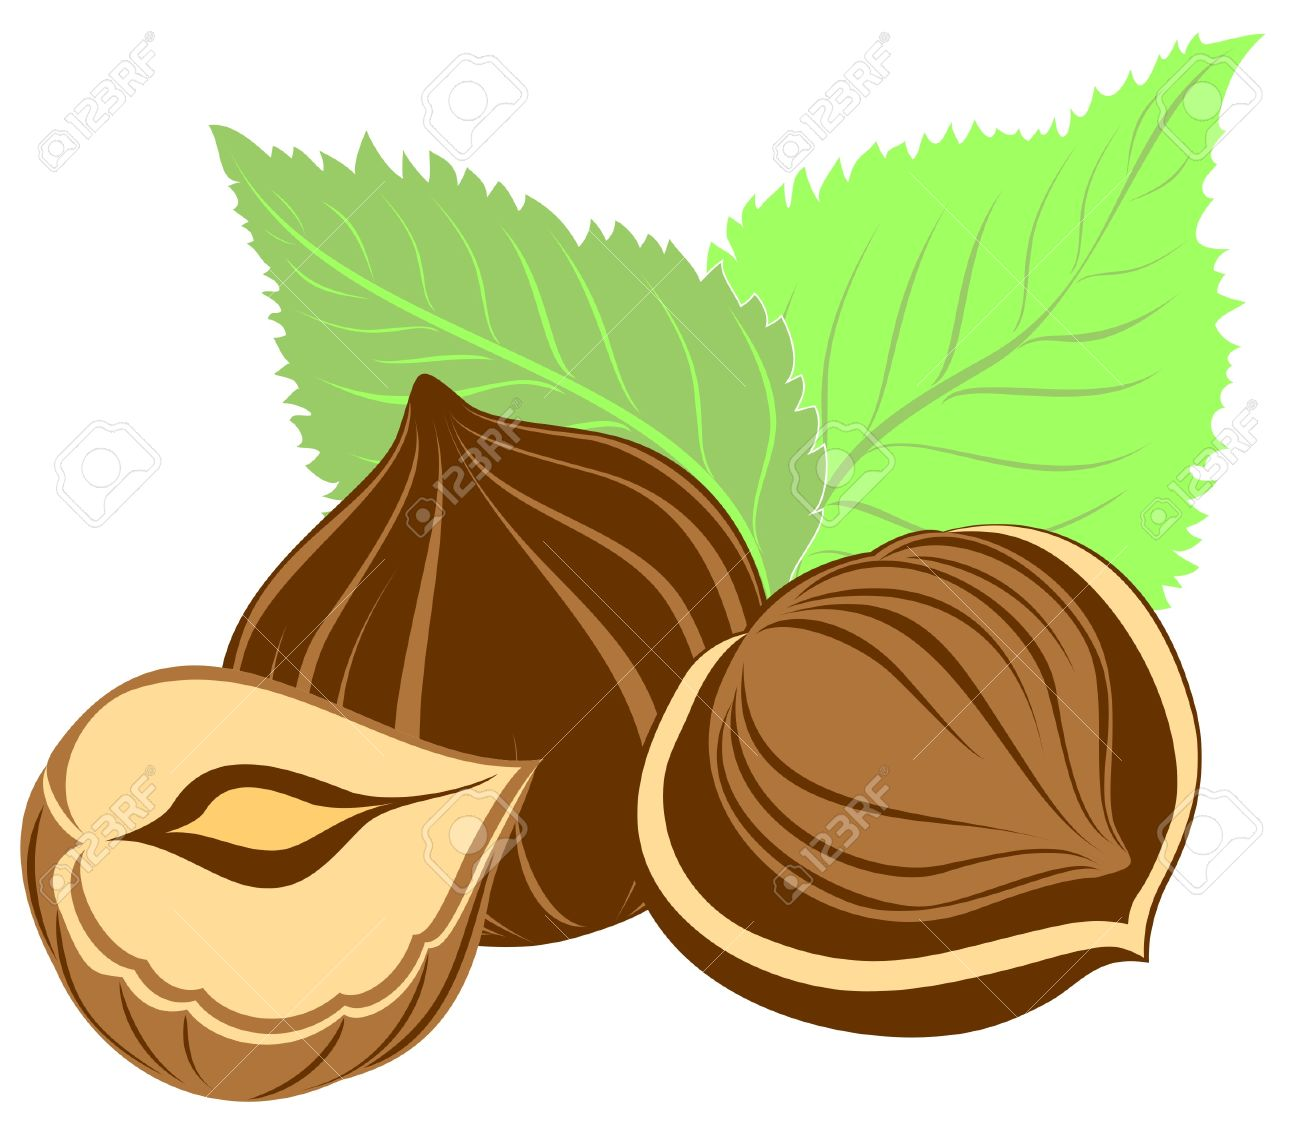 Hazelnuts With Leaves Royalty Free Cliparts, Vectors, And Stock.